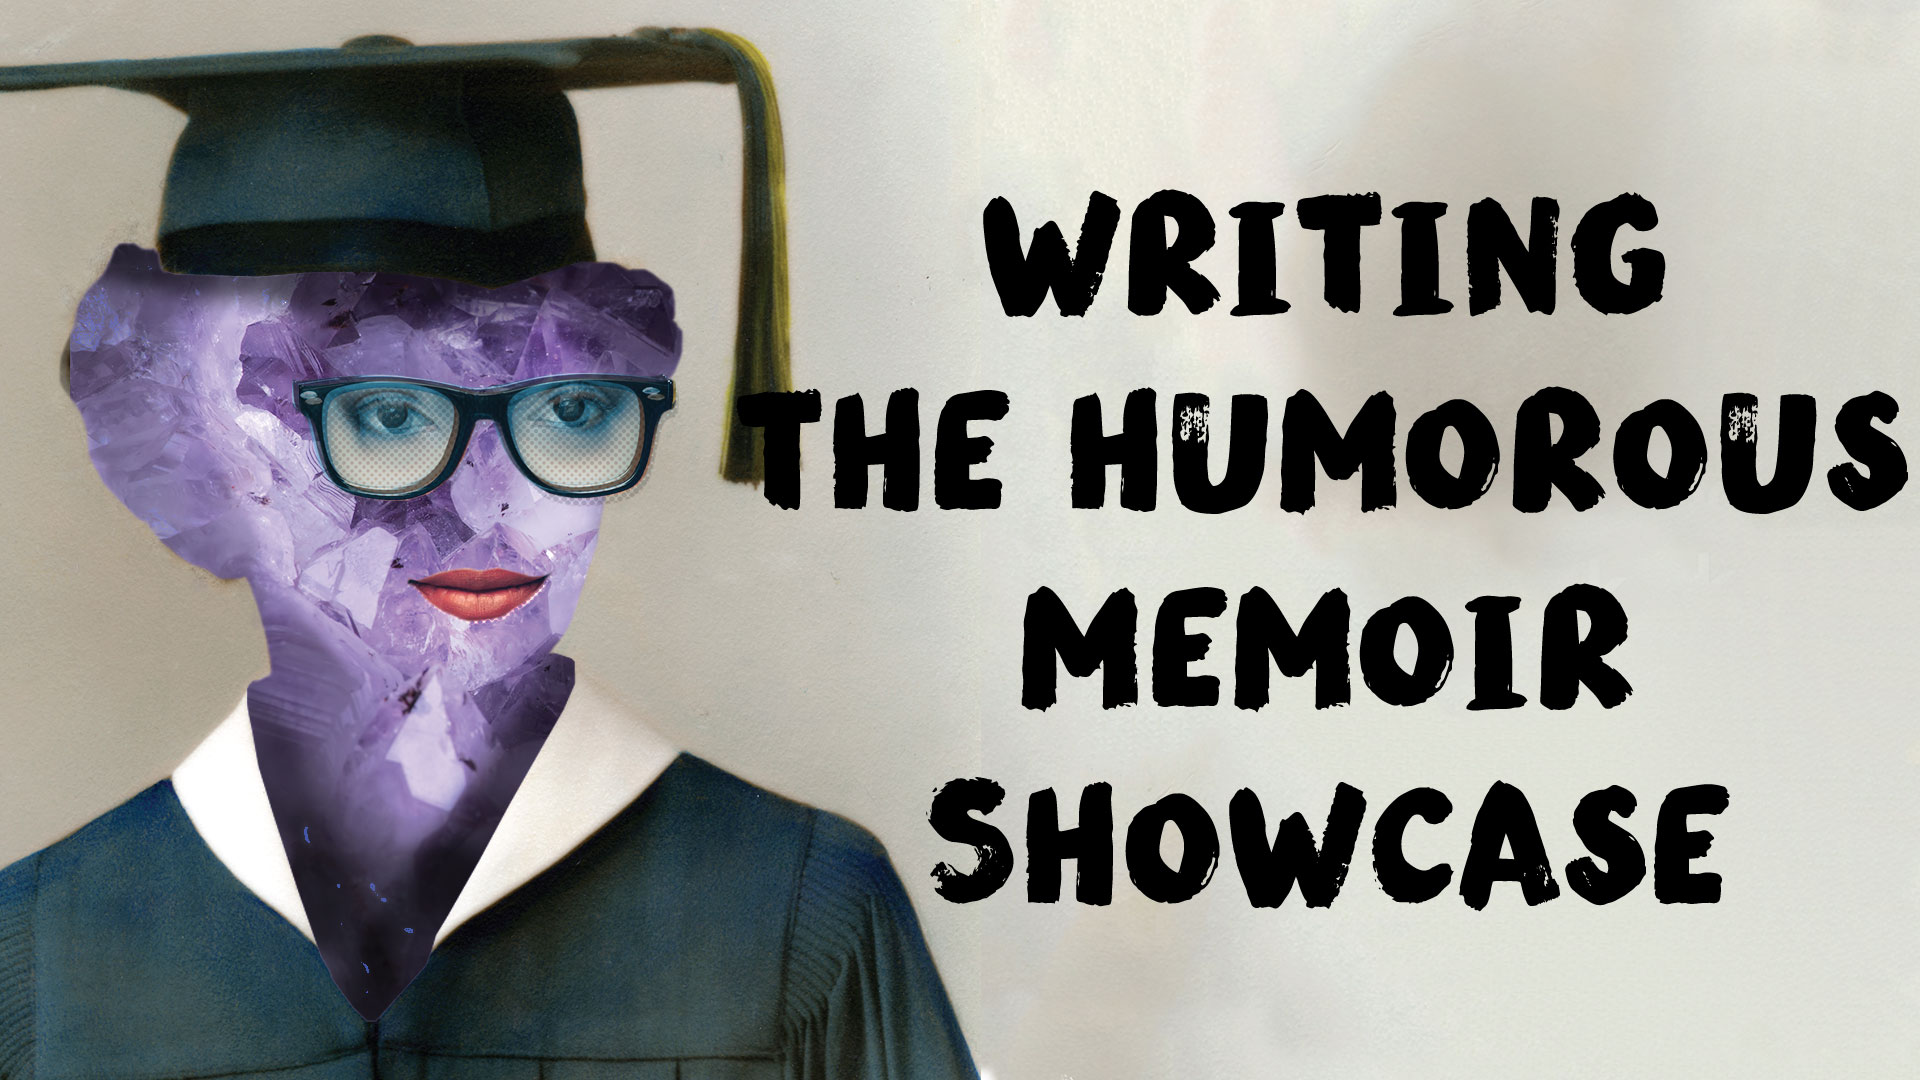 Writing the Humorous Memoir Showcase